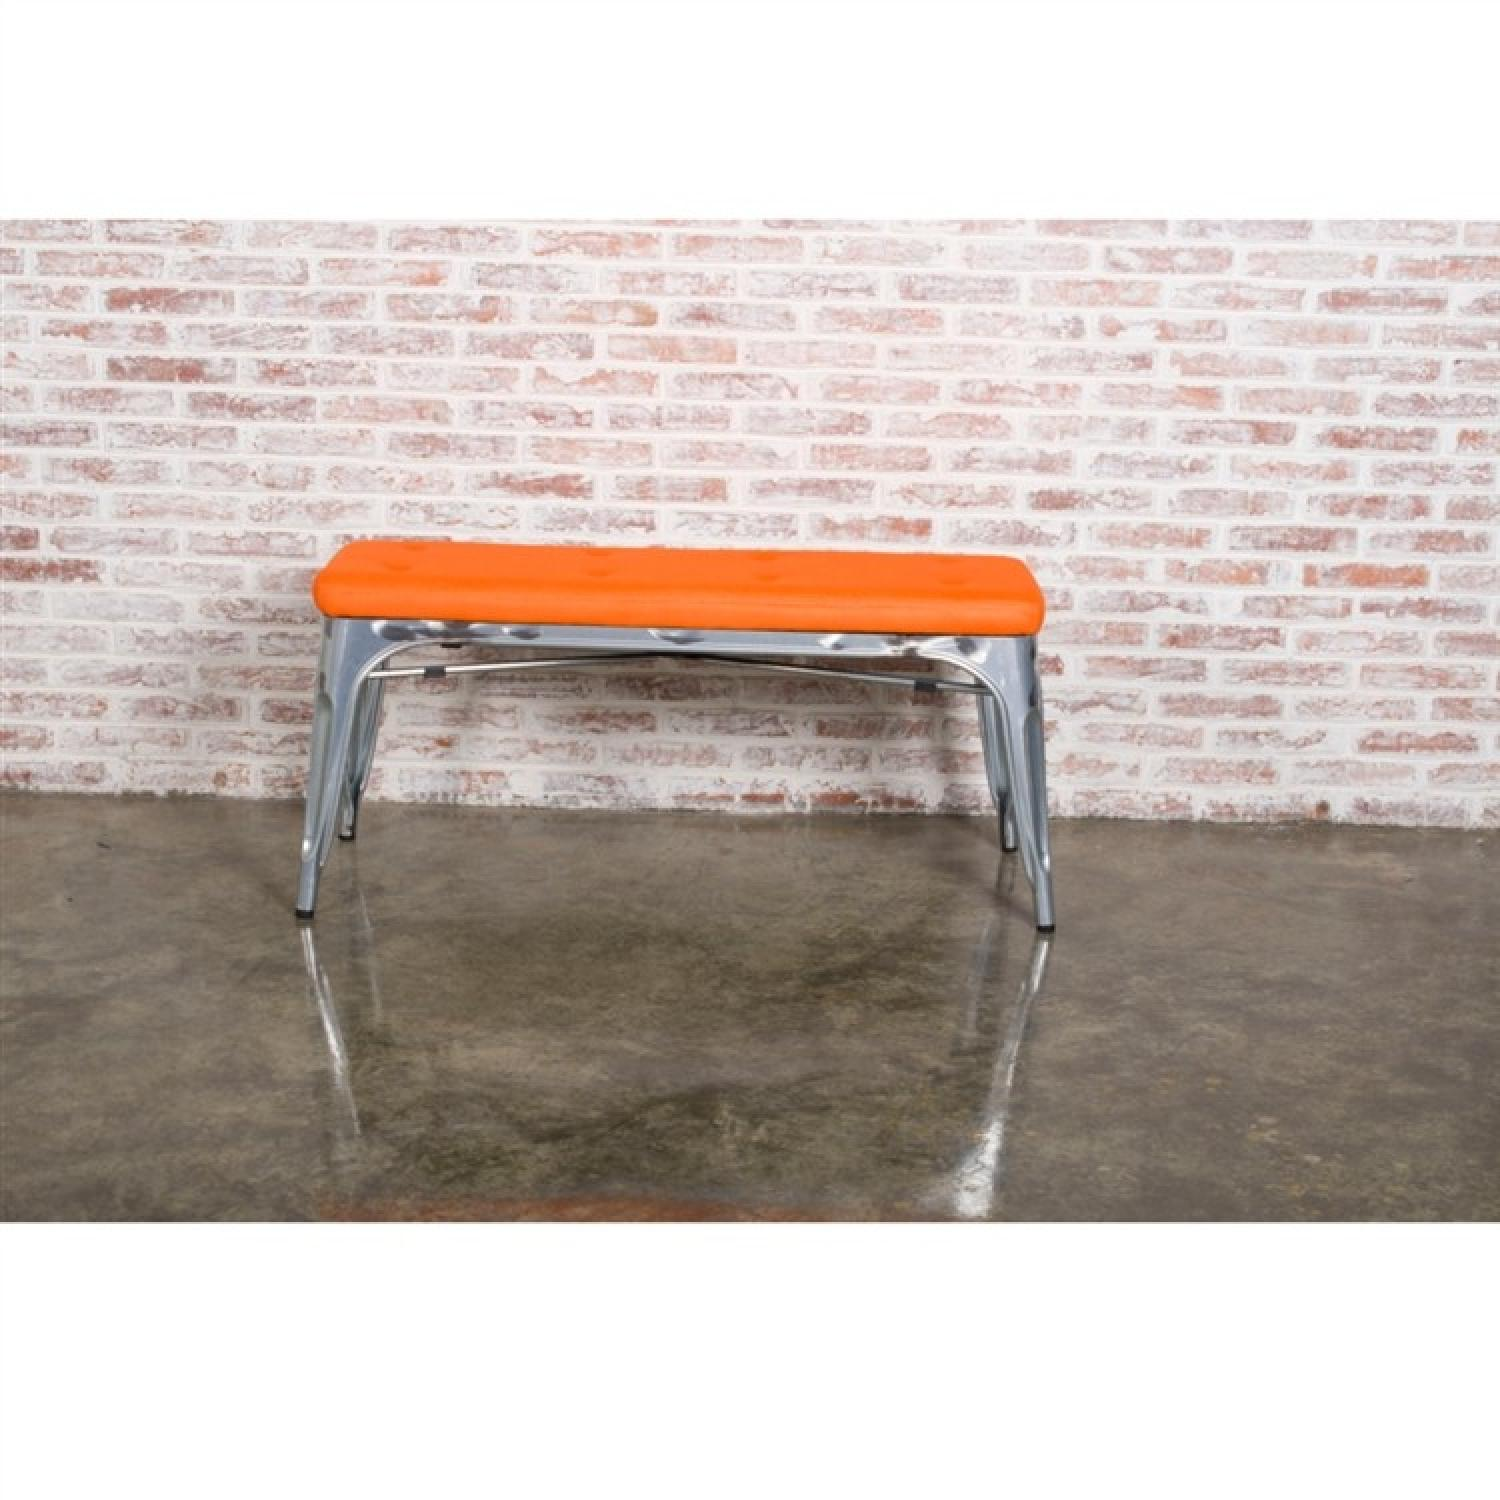 Bench in Galvanized Steel w/ Orange Mesh Cushion - image-3